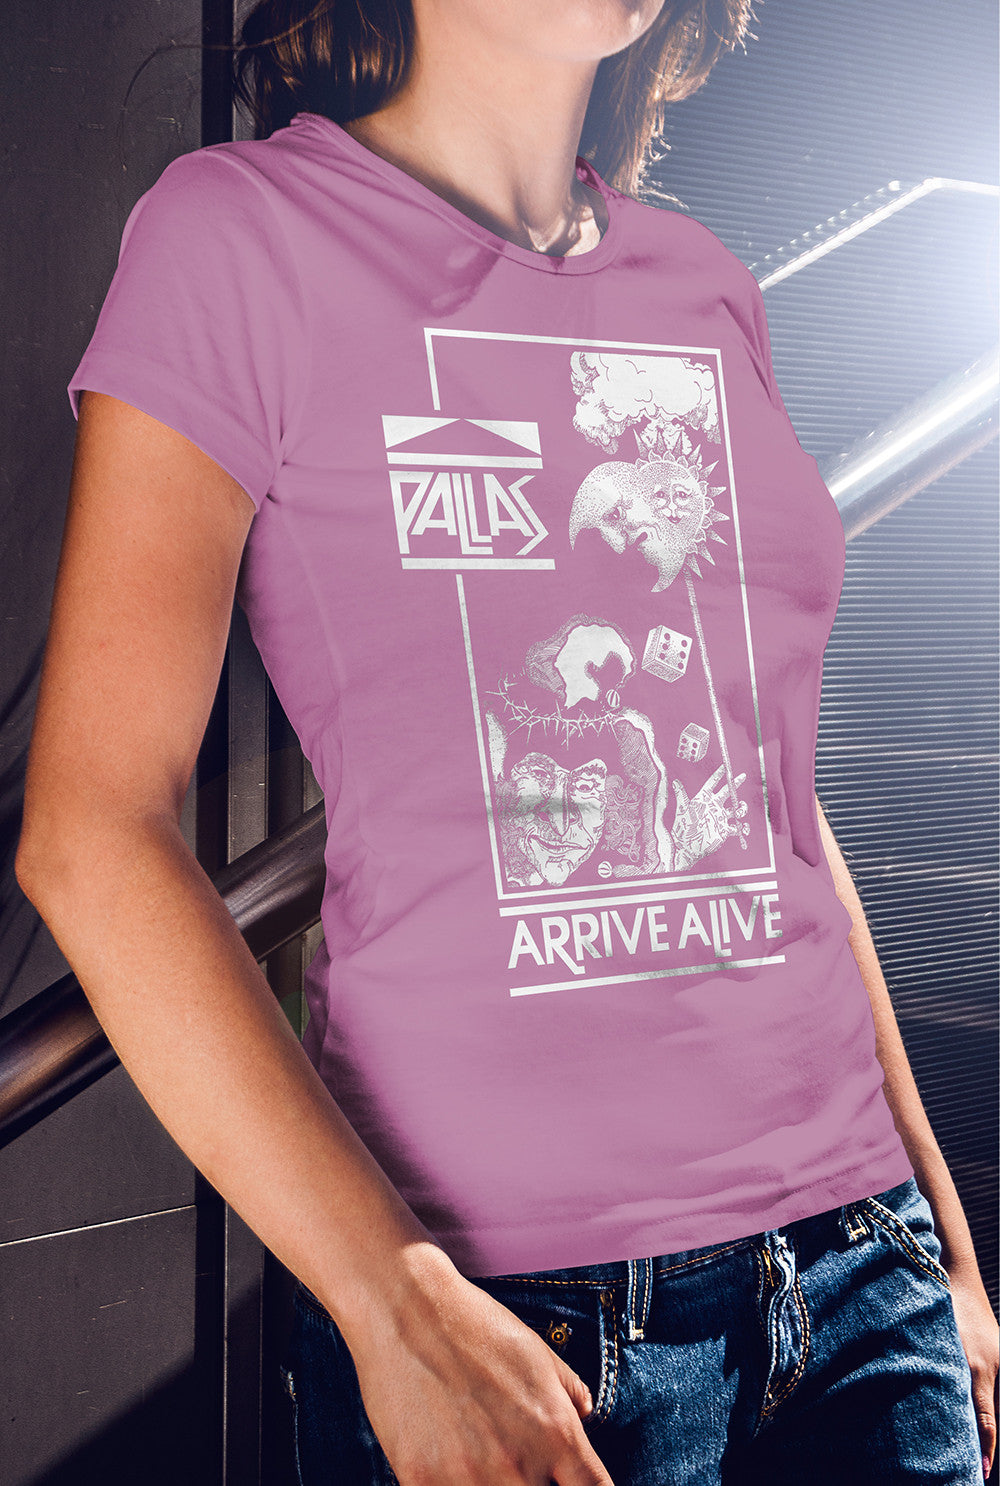 Pallas Arrive Alive Women's fitted T-shirt<p> In Black, White, Red, Purple and Azalea Pink Custom T Shirt by Lets Get Shirty Dot Com